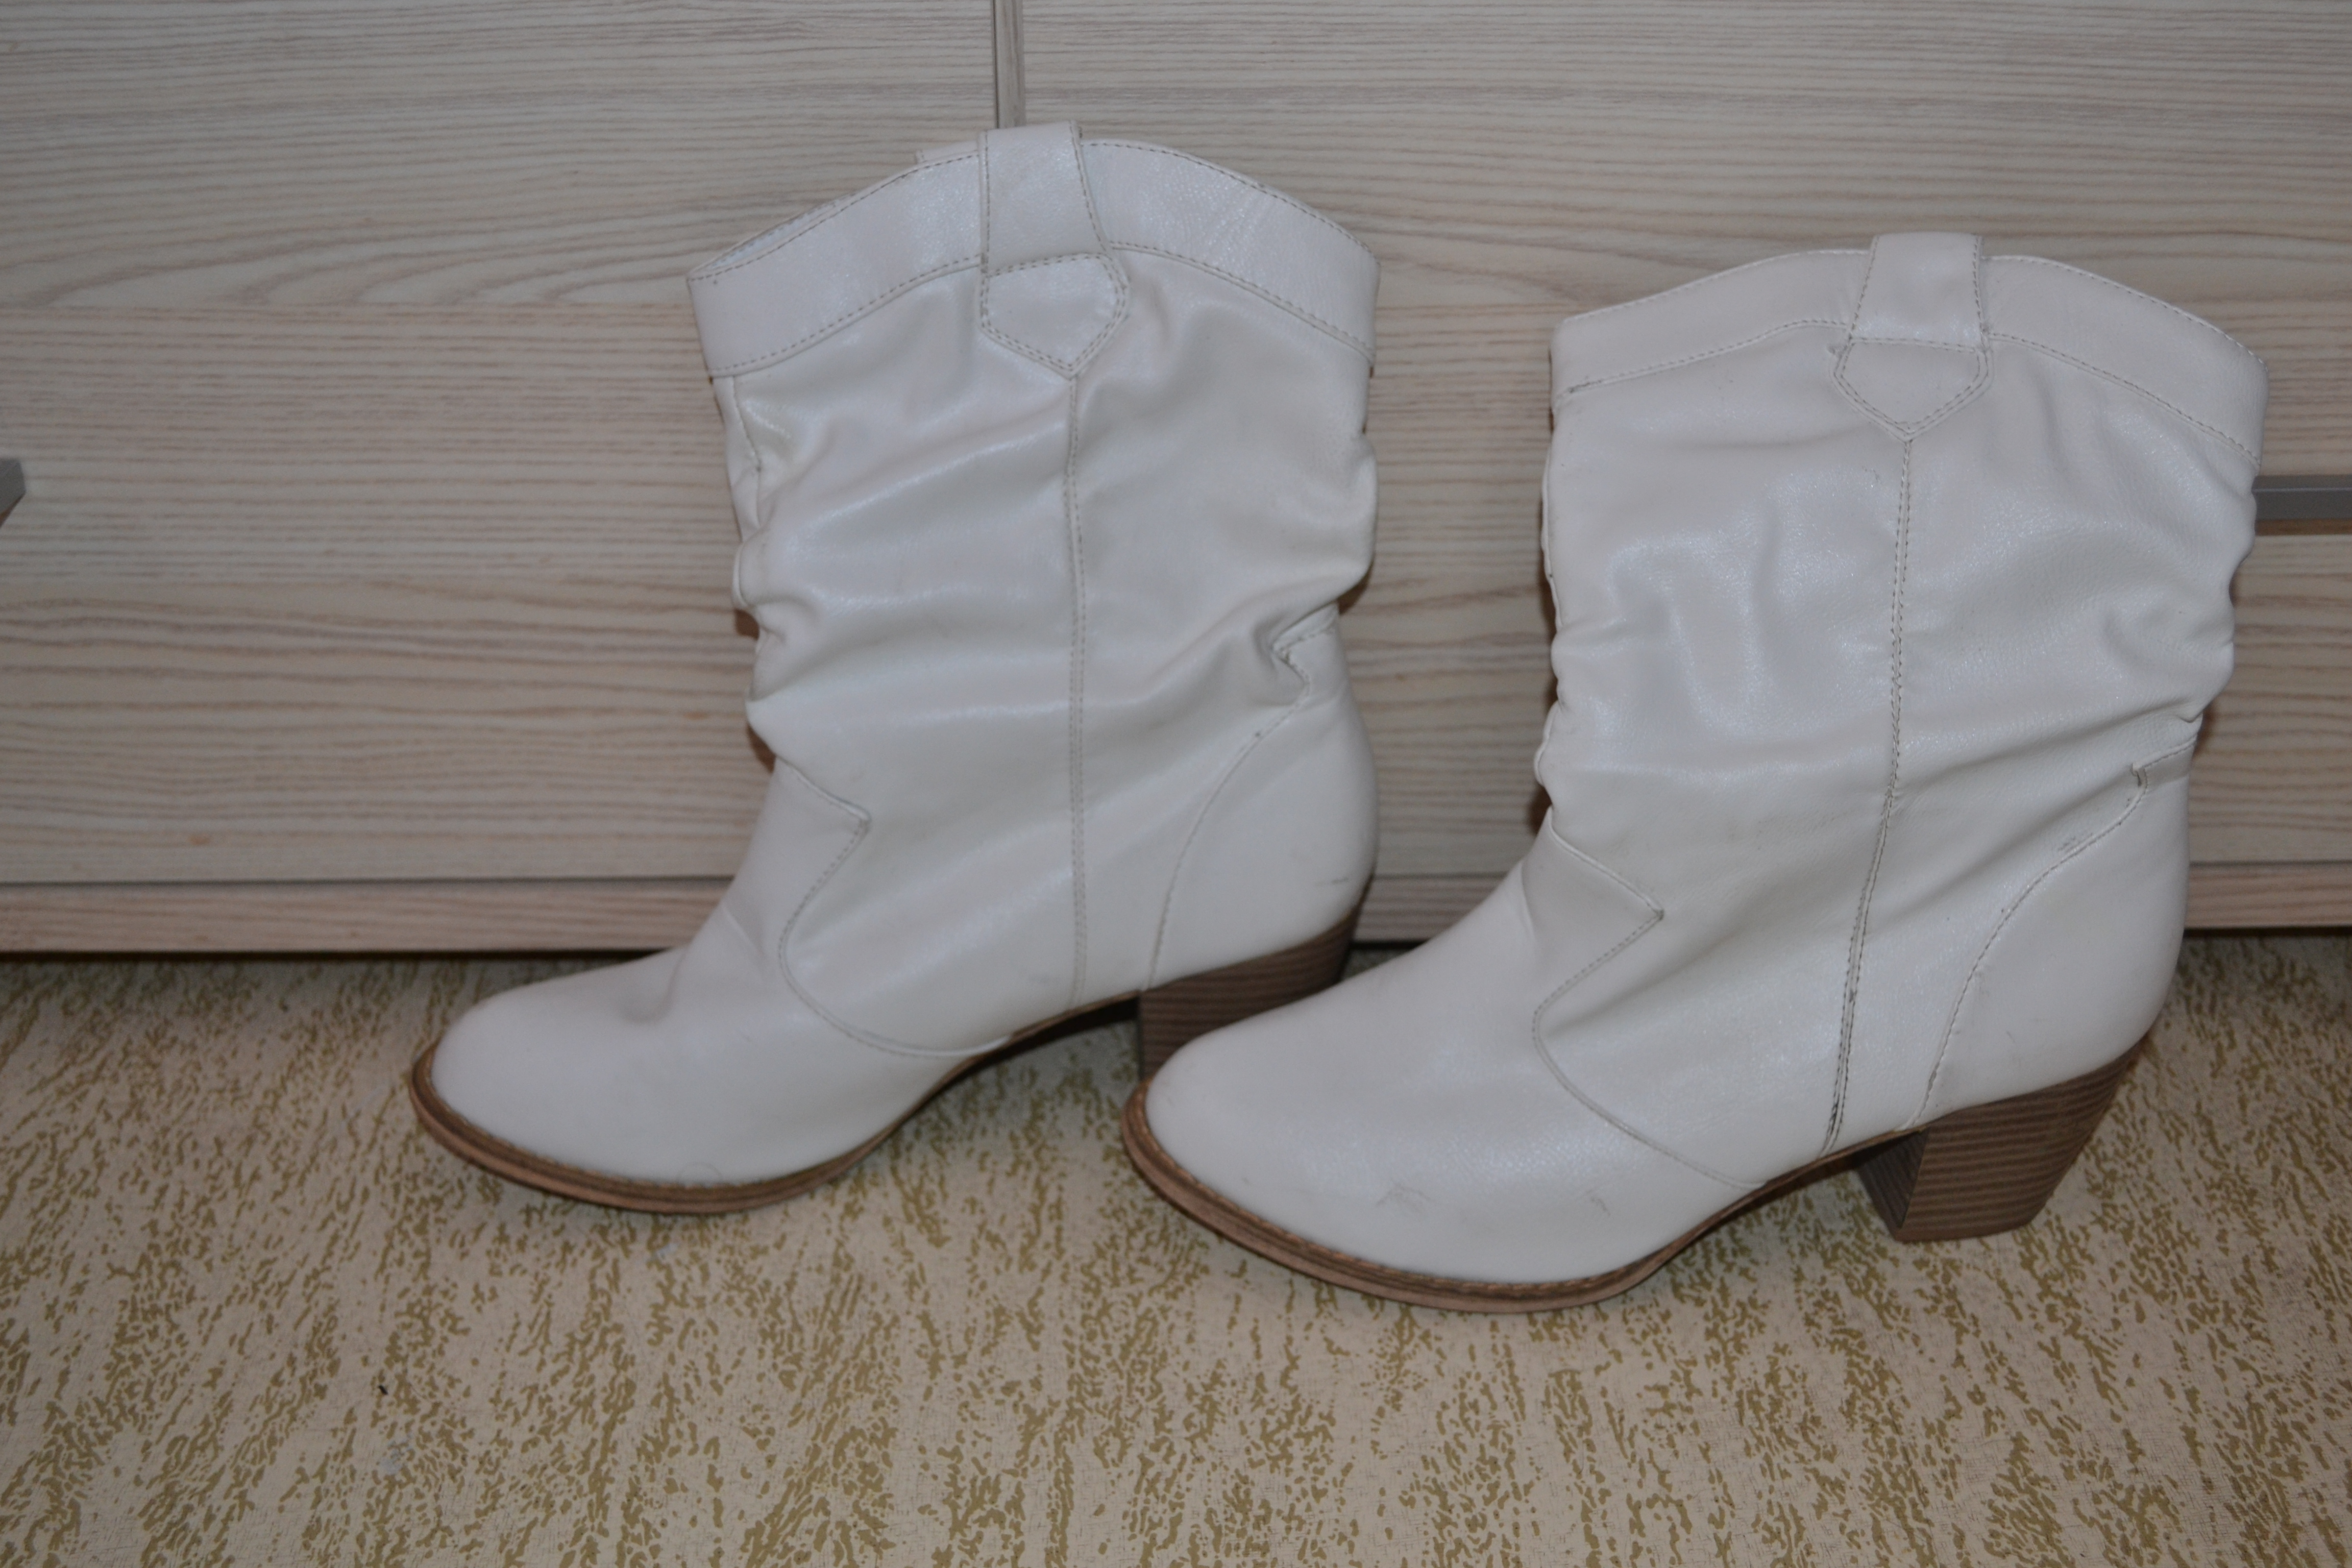 bottes blanches p39 - chaussures femme - angie59150 - photos